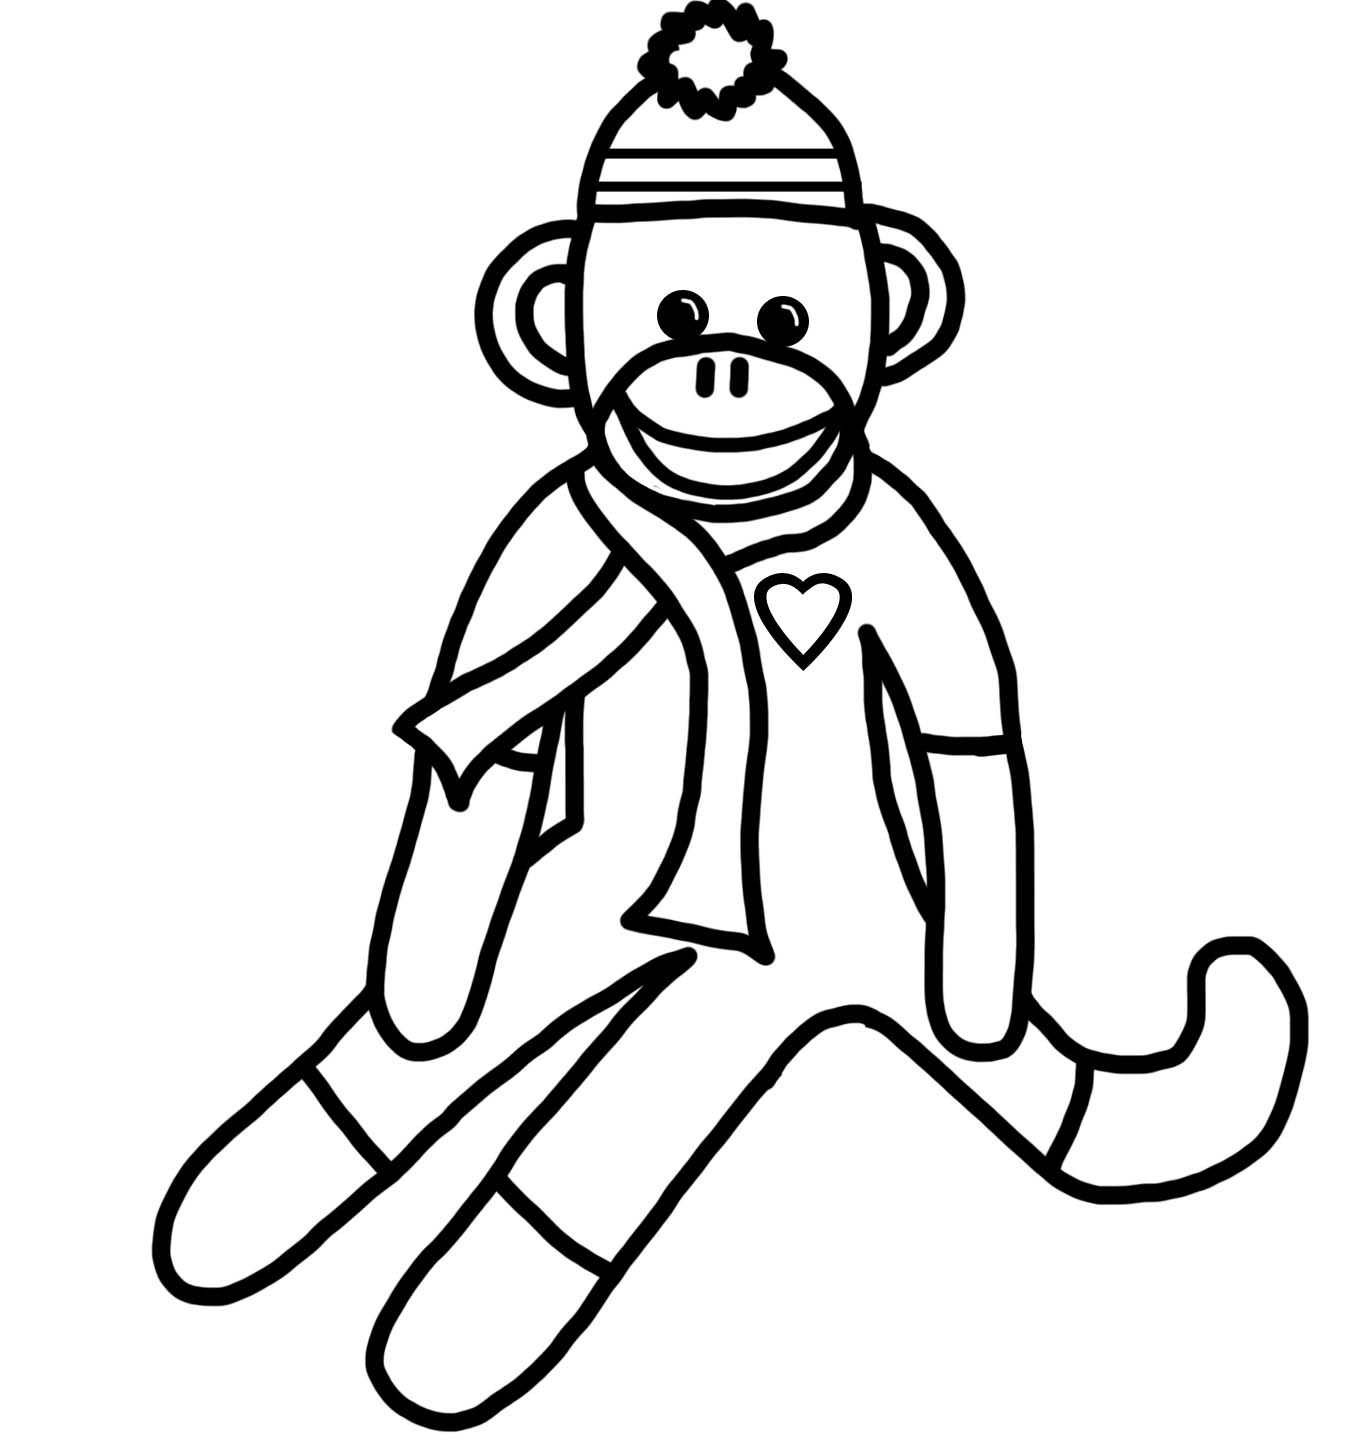 1368x1440 Coloring Pages For Monkey New Baby Monkey Coloring Page Monkey